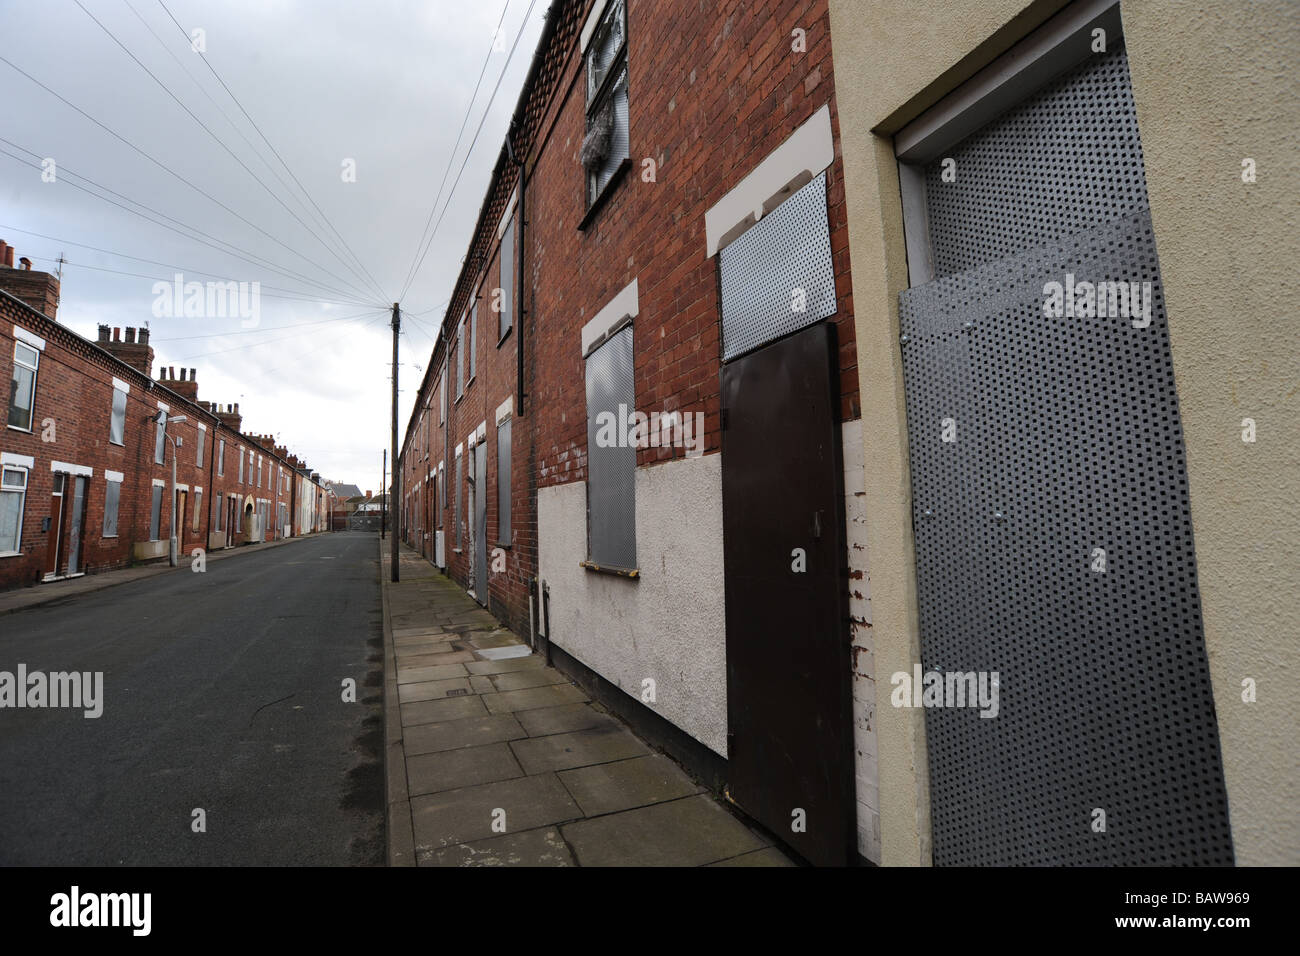 Run down houses ready for demolition, Goole near Hull UK - Stock Image